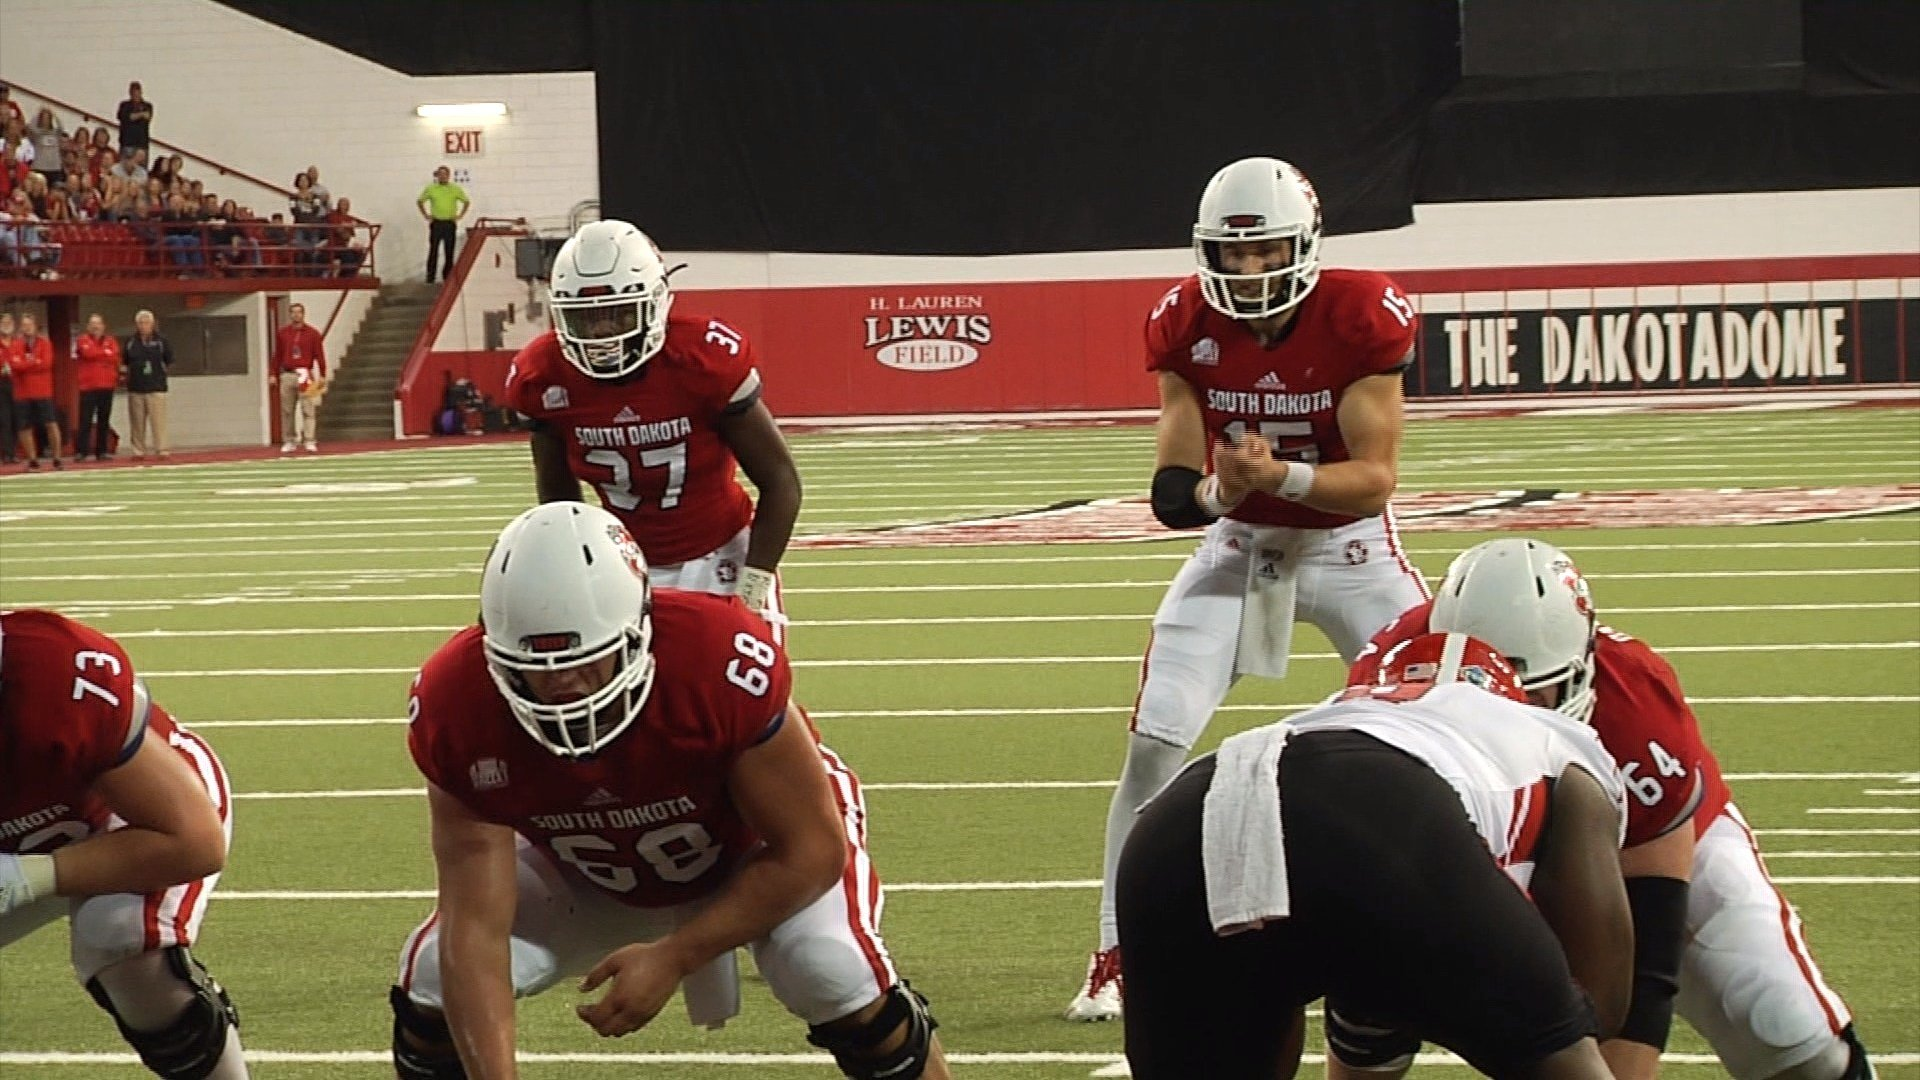 South Dakota beat Youngstown State on Saturday, 31-28.